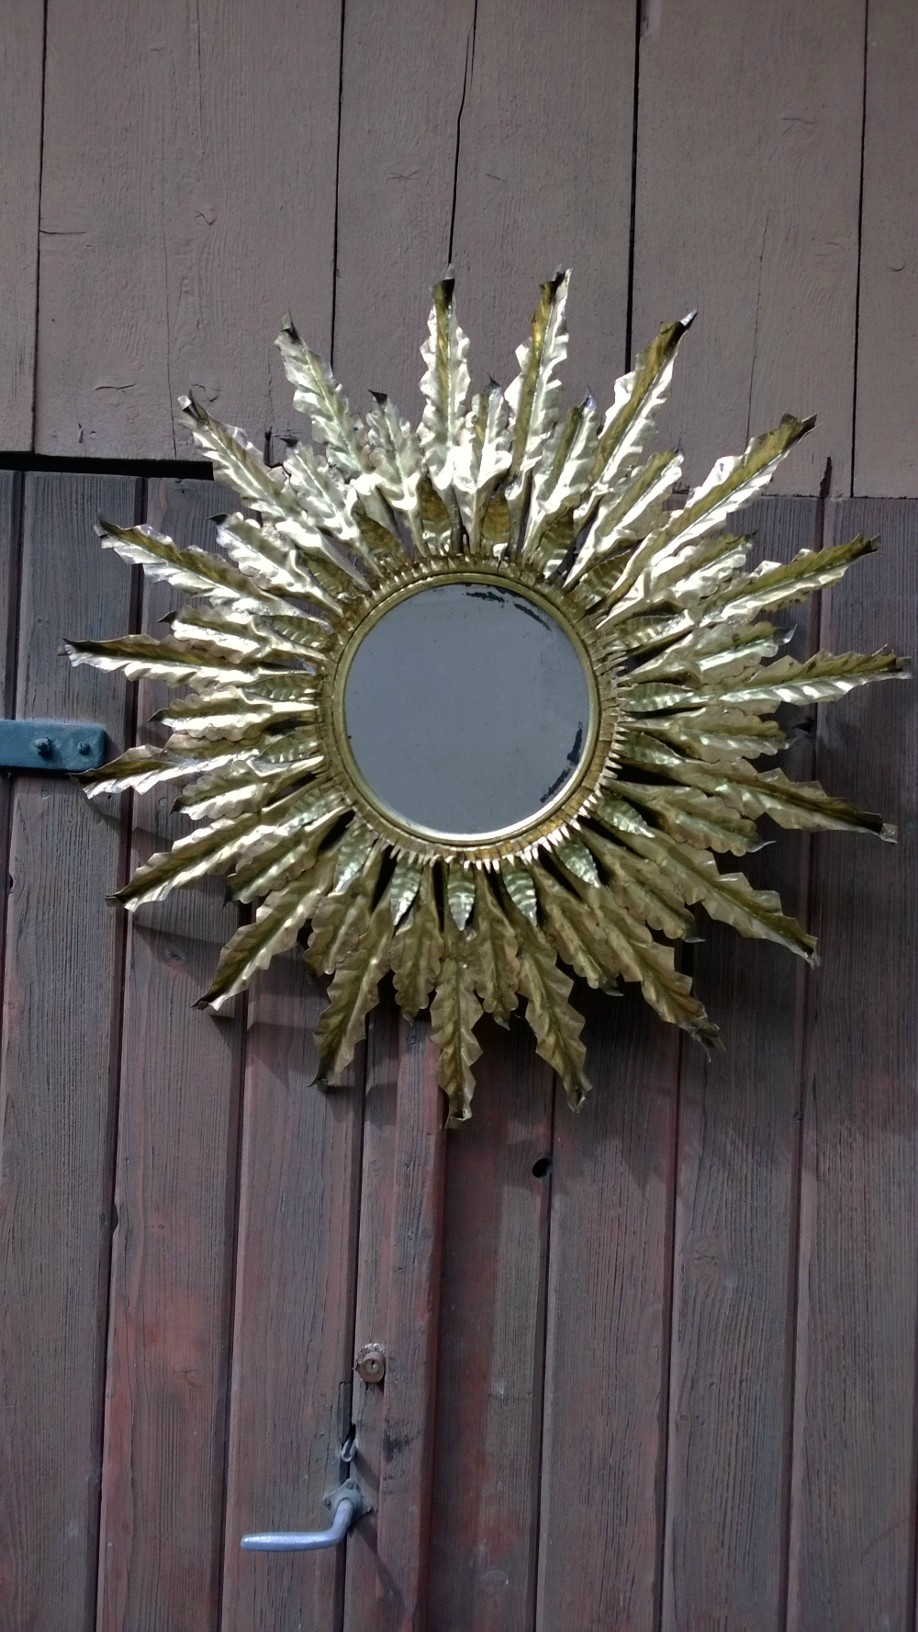 Grand miroir soleil en metal dor vintage indus what else for Miroir soleil metal